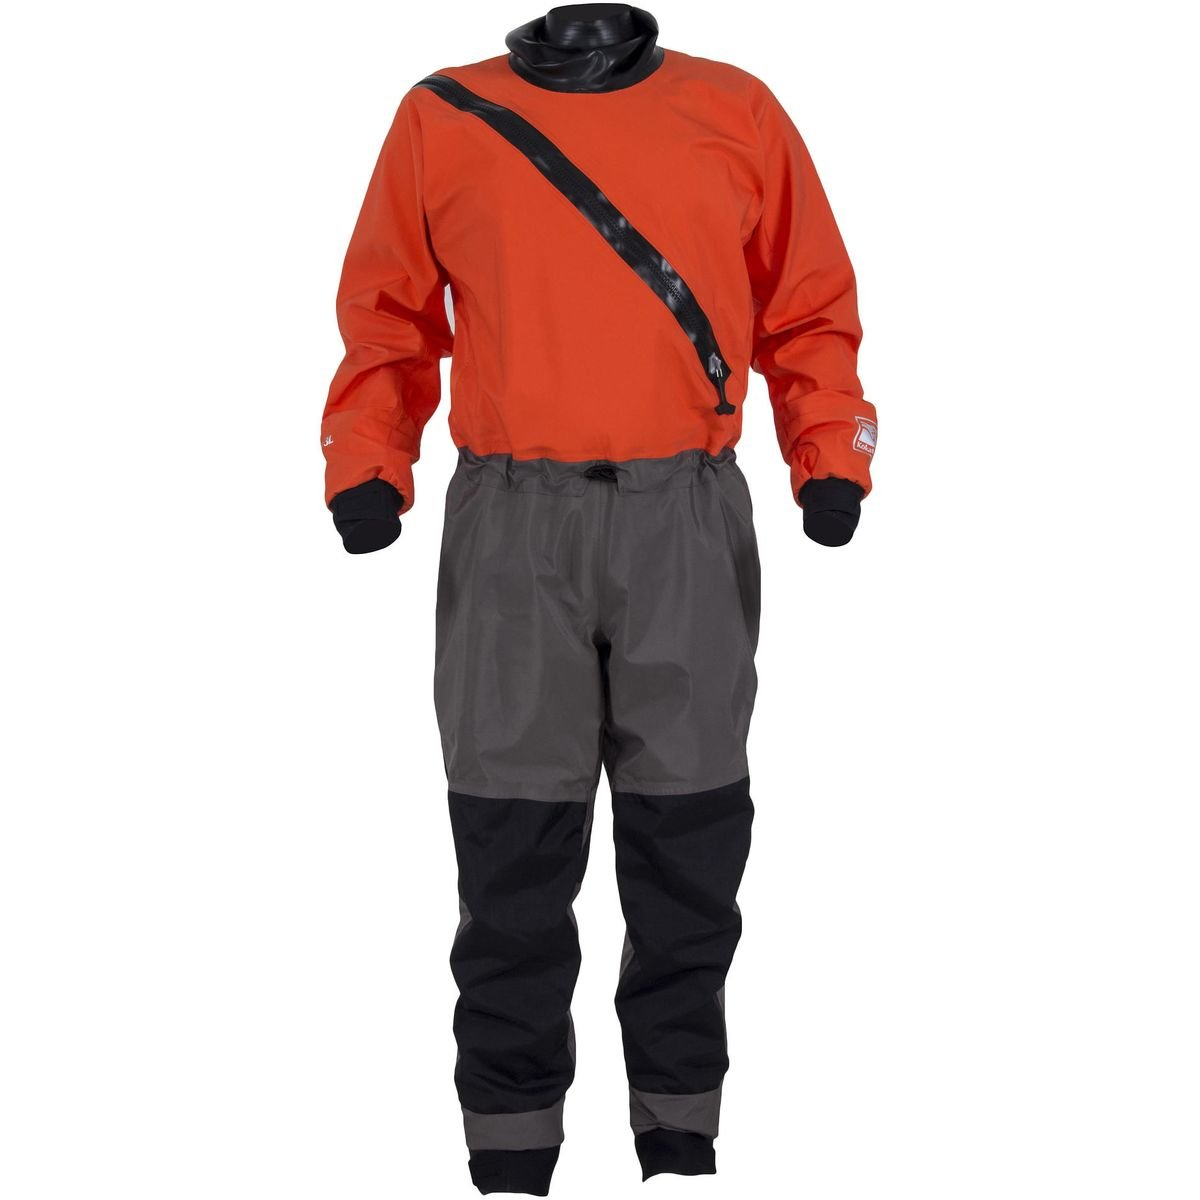 Kokatat Men's Hydrus Swift Entry Drysuit-Tangerine-M by Kokatat